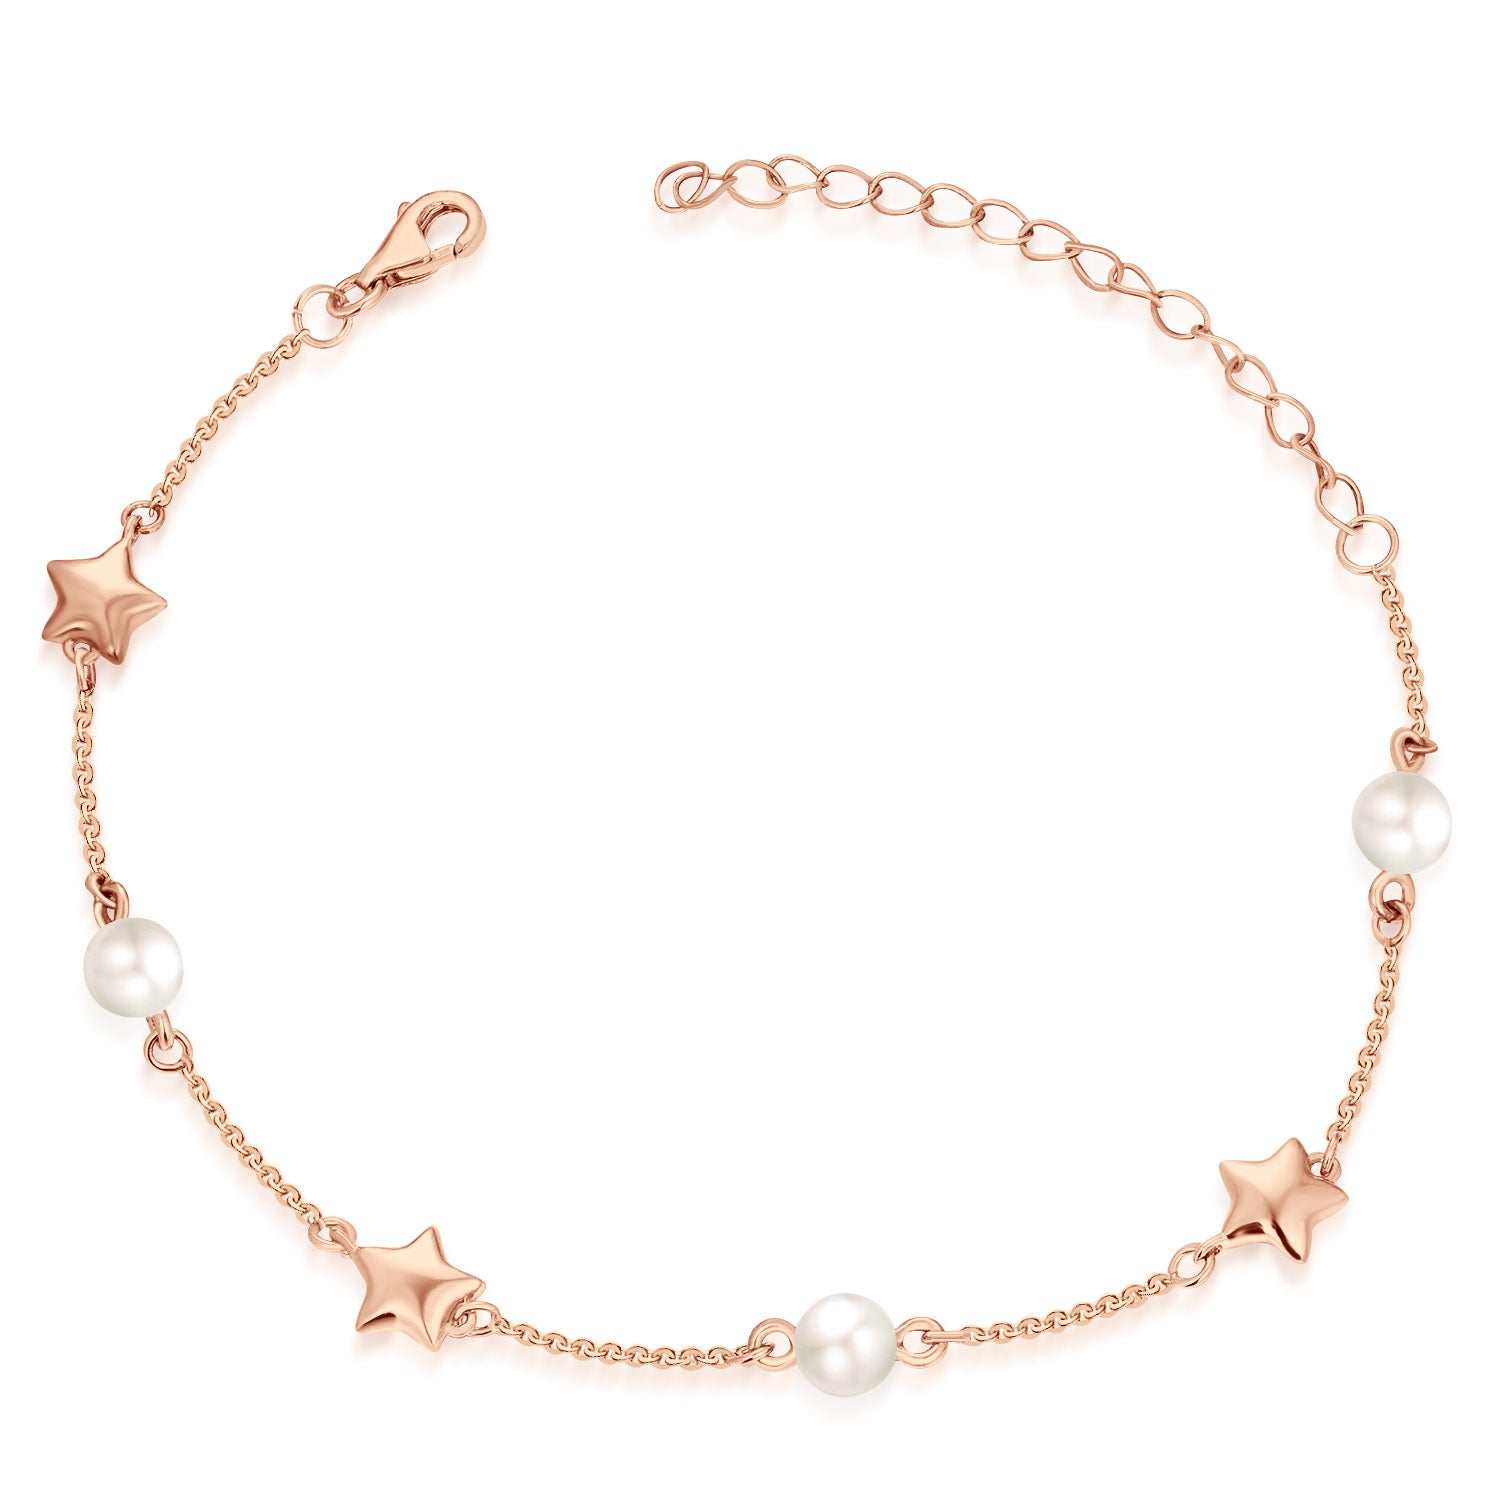 Farjary Elegant 14K Rose Gold Stars and 9K White freshwater Pearls bracelet for women